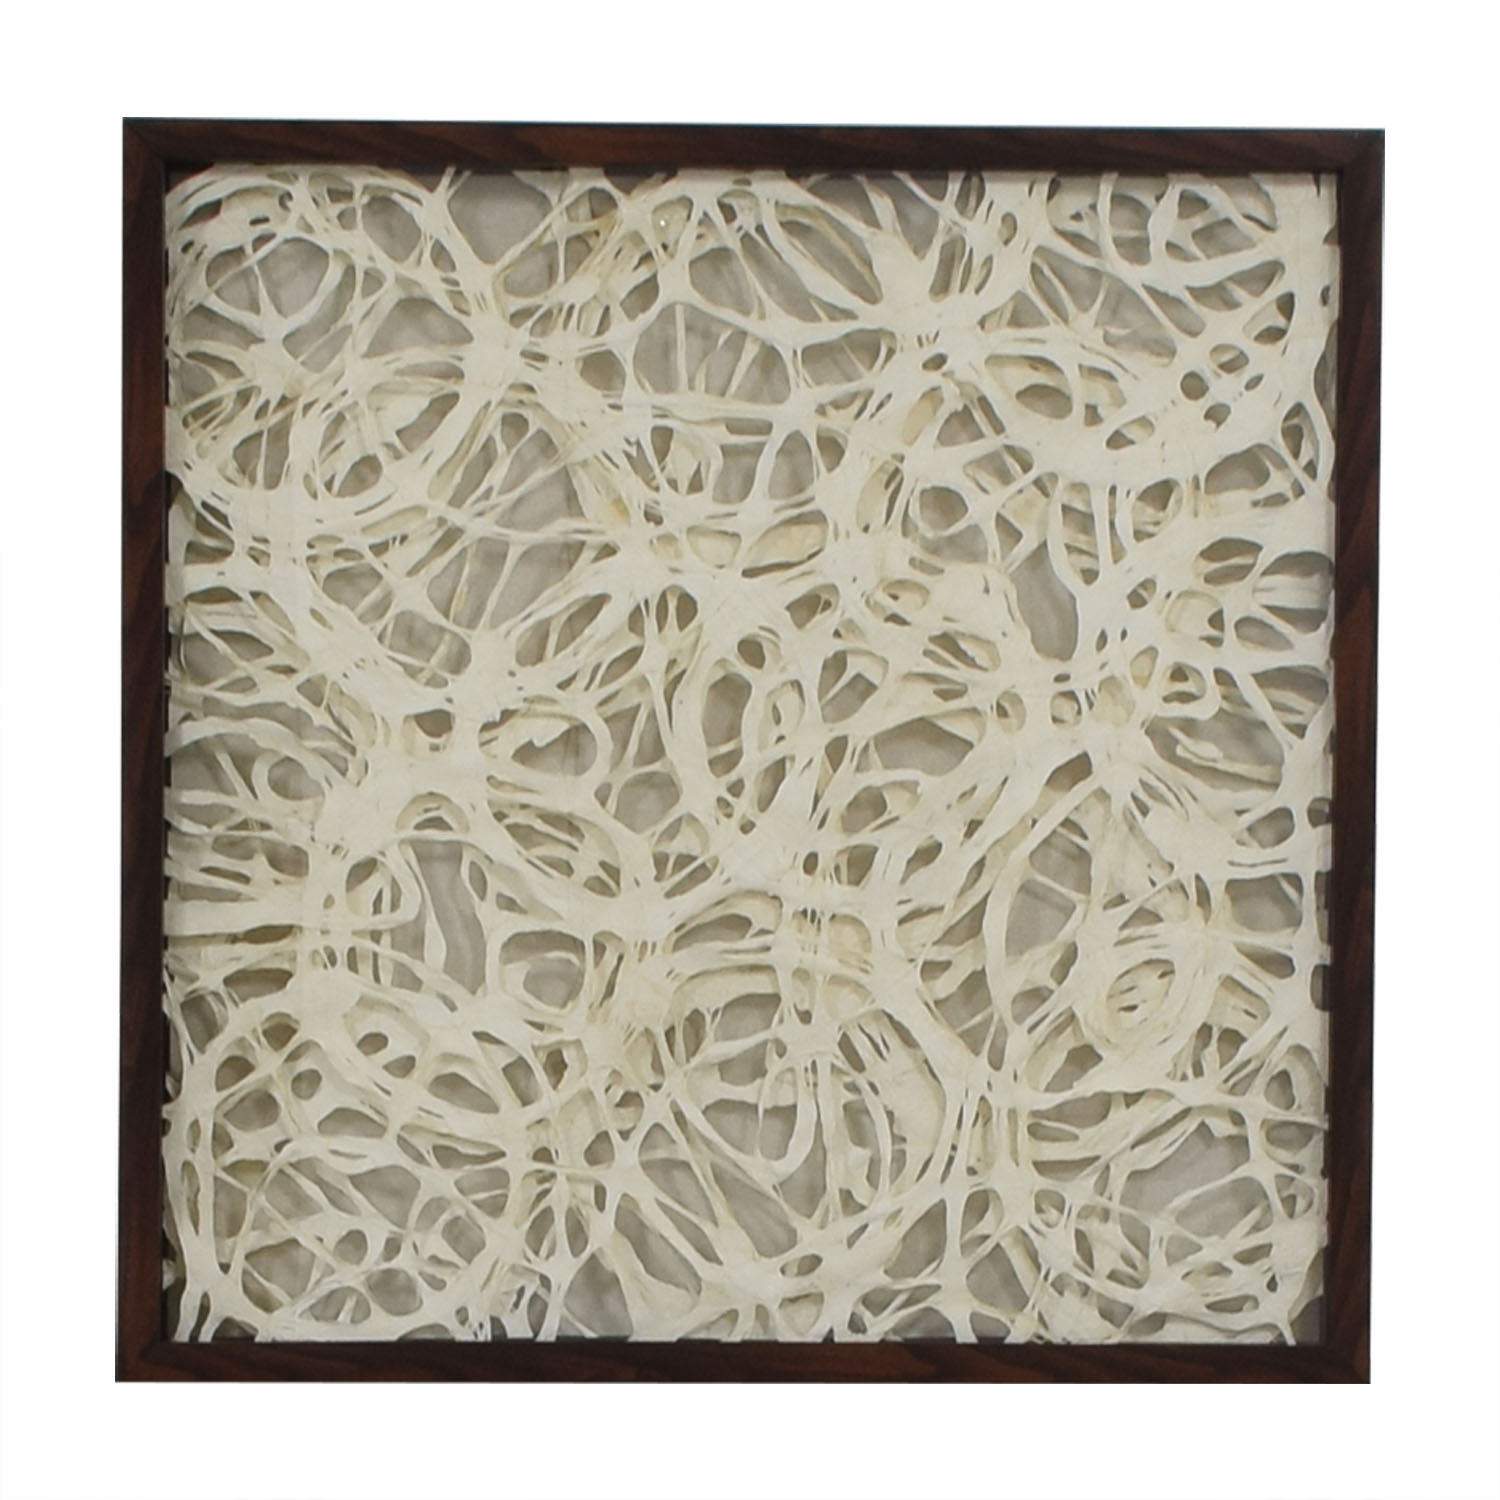 Overlapping Strings Wood Framed Art used